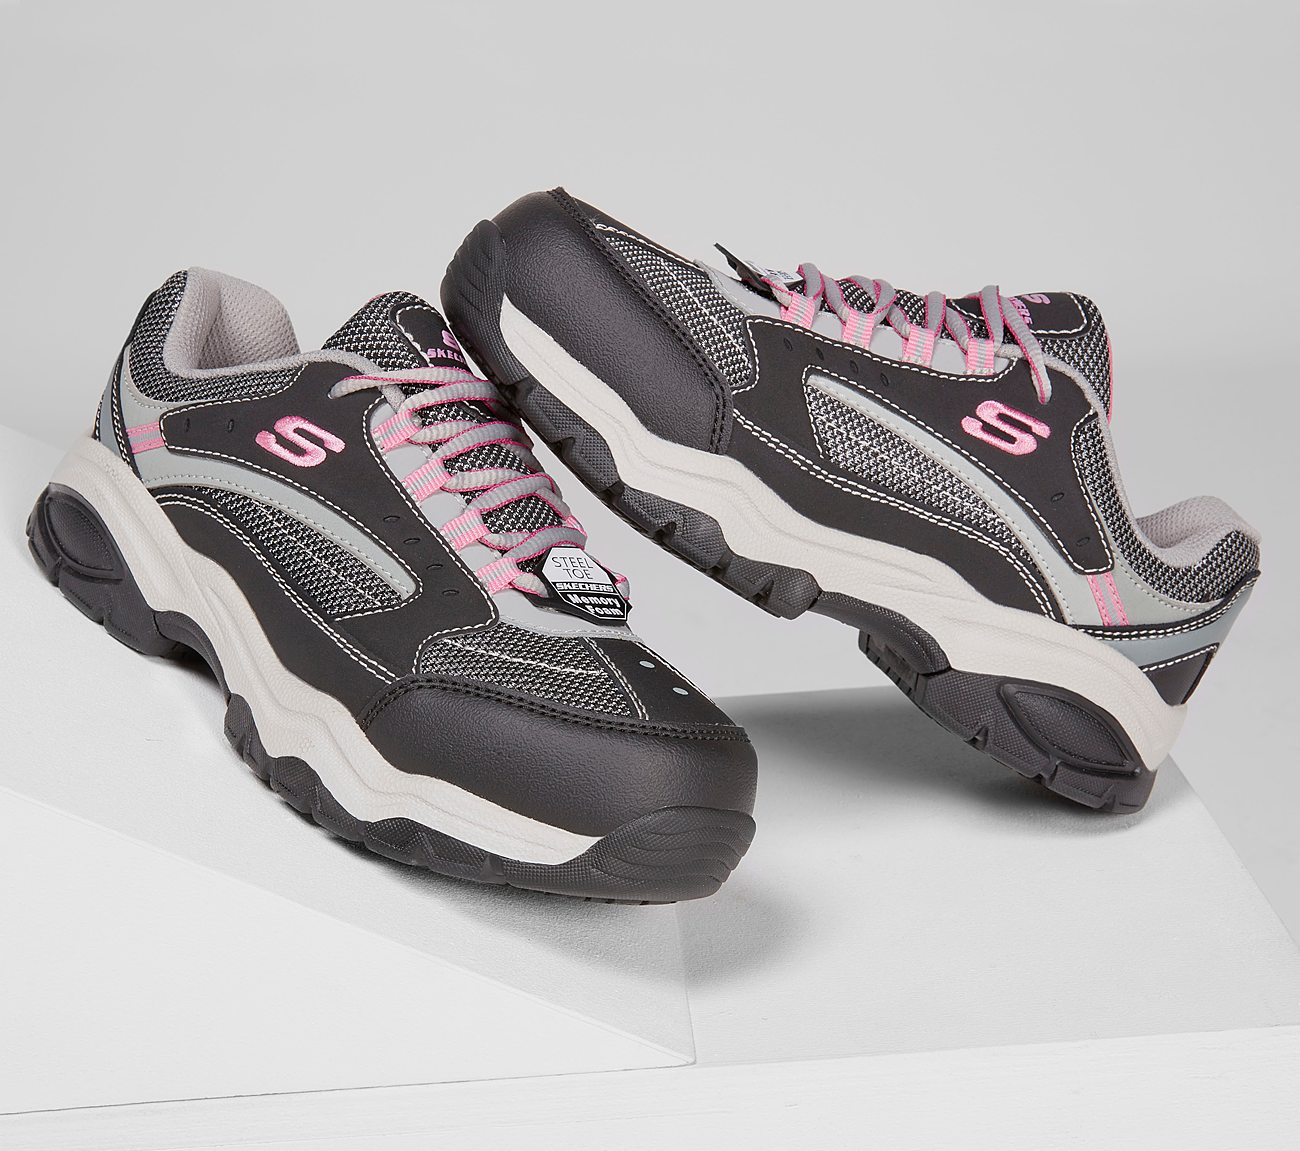 10b9dae2b9a0 Buy SKECHERS Work  Biscoe ST Work Shoes only  70.00